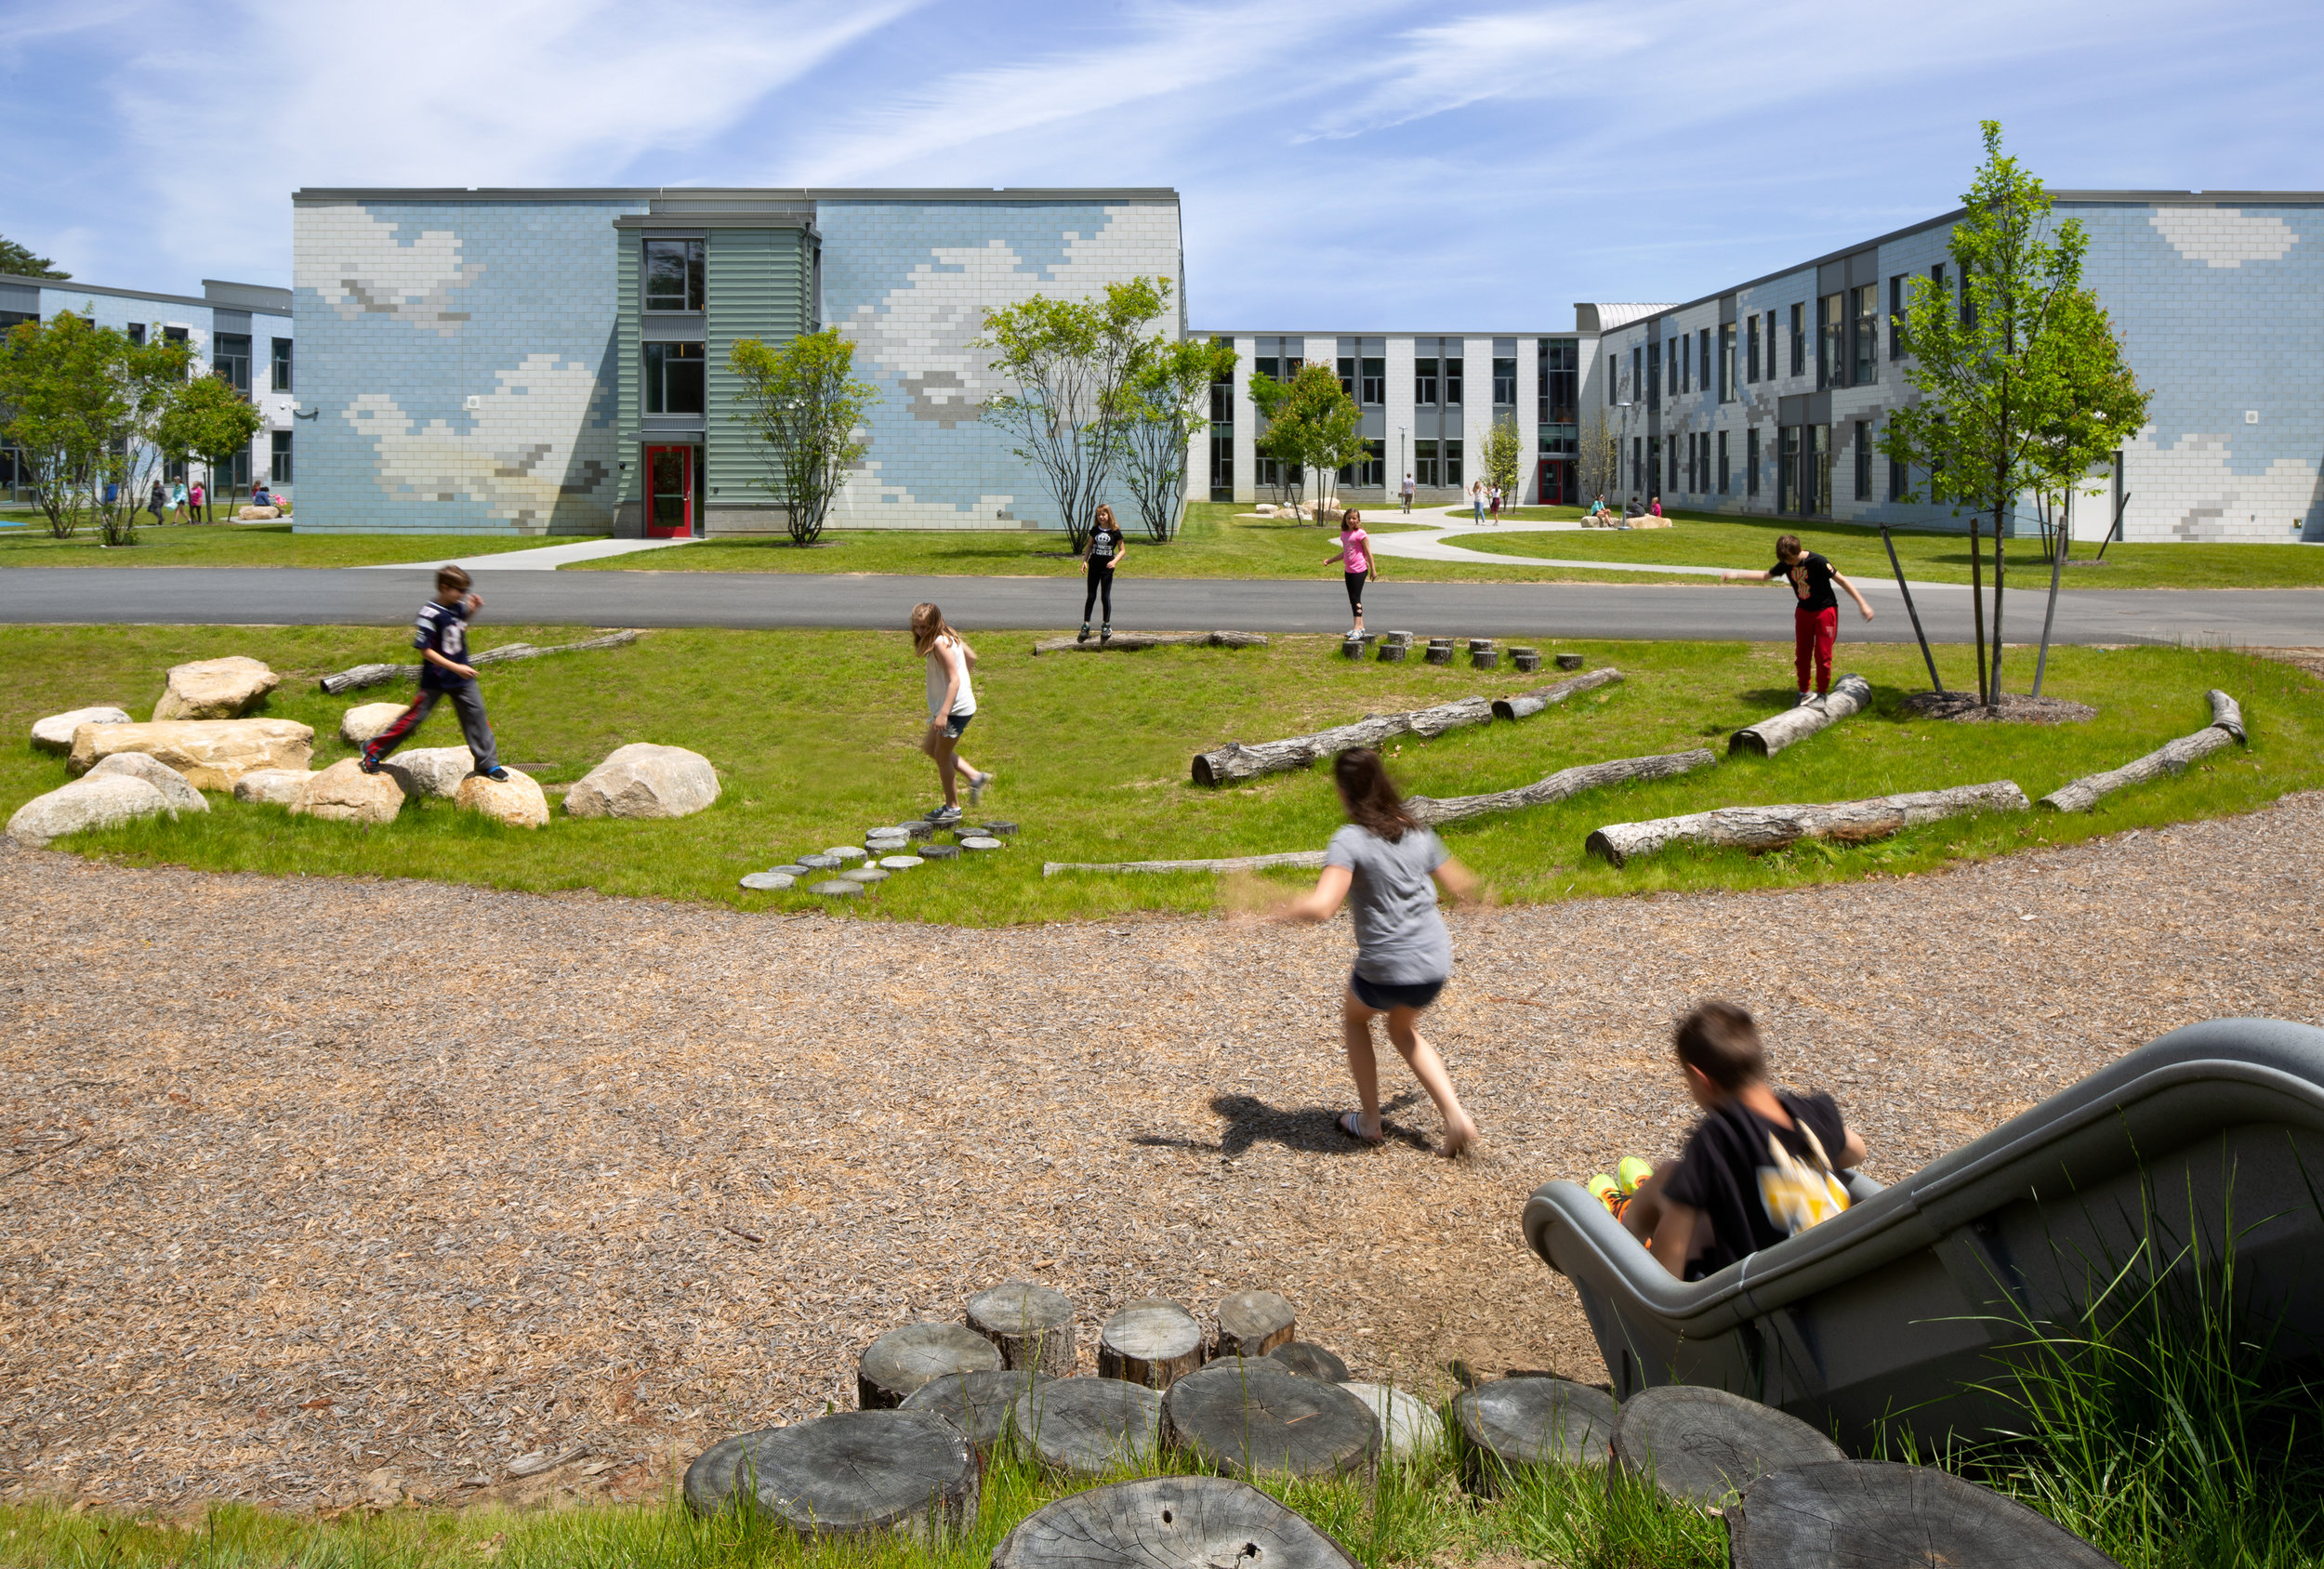 Nature Play Area at Carver Elementary School (Photo by Ed Wonsek)